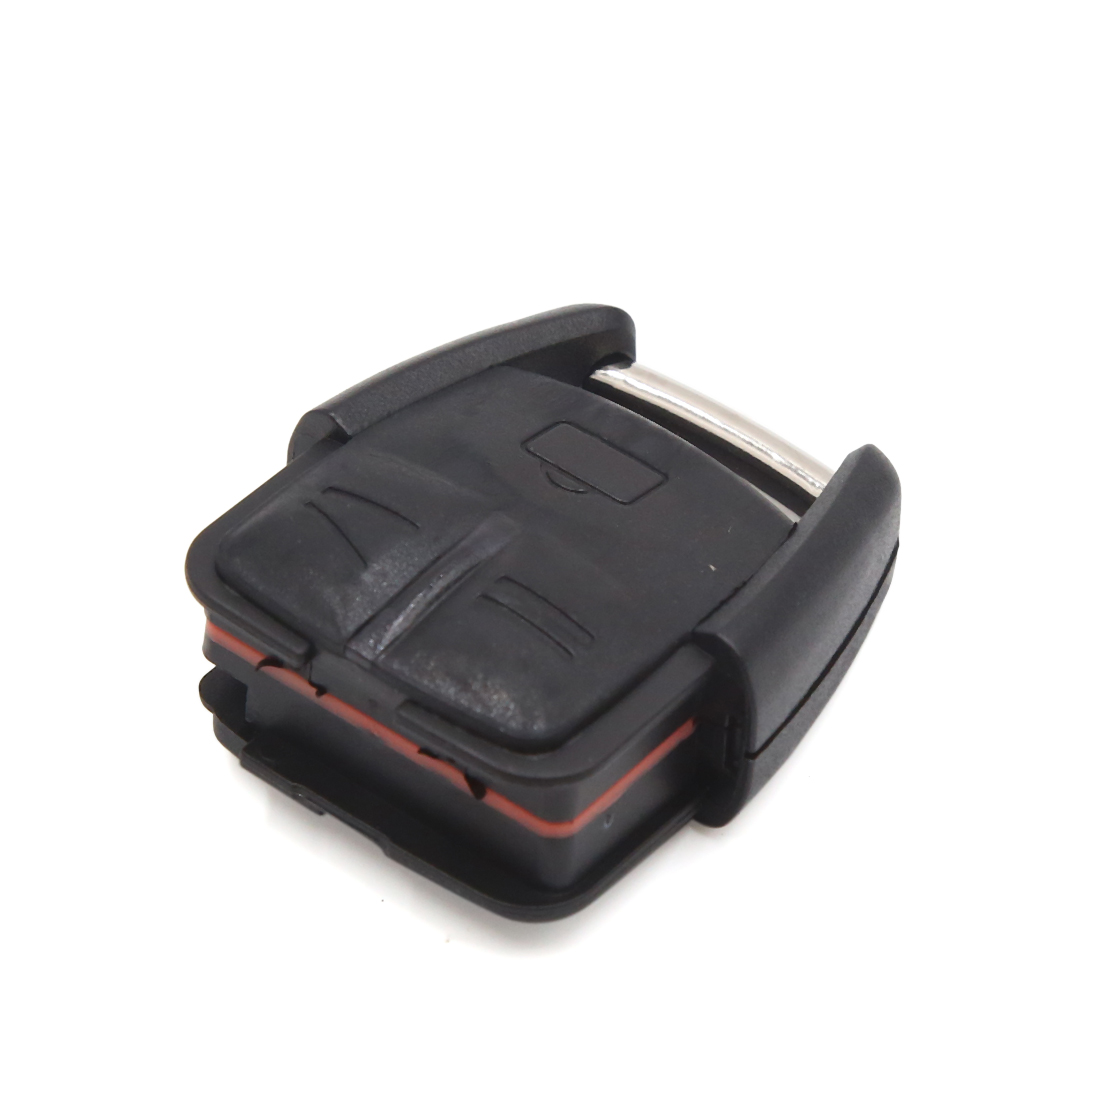 Black 3 Buttons Remote Control Fob Clicker Case Shell Replacement for Opel